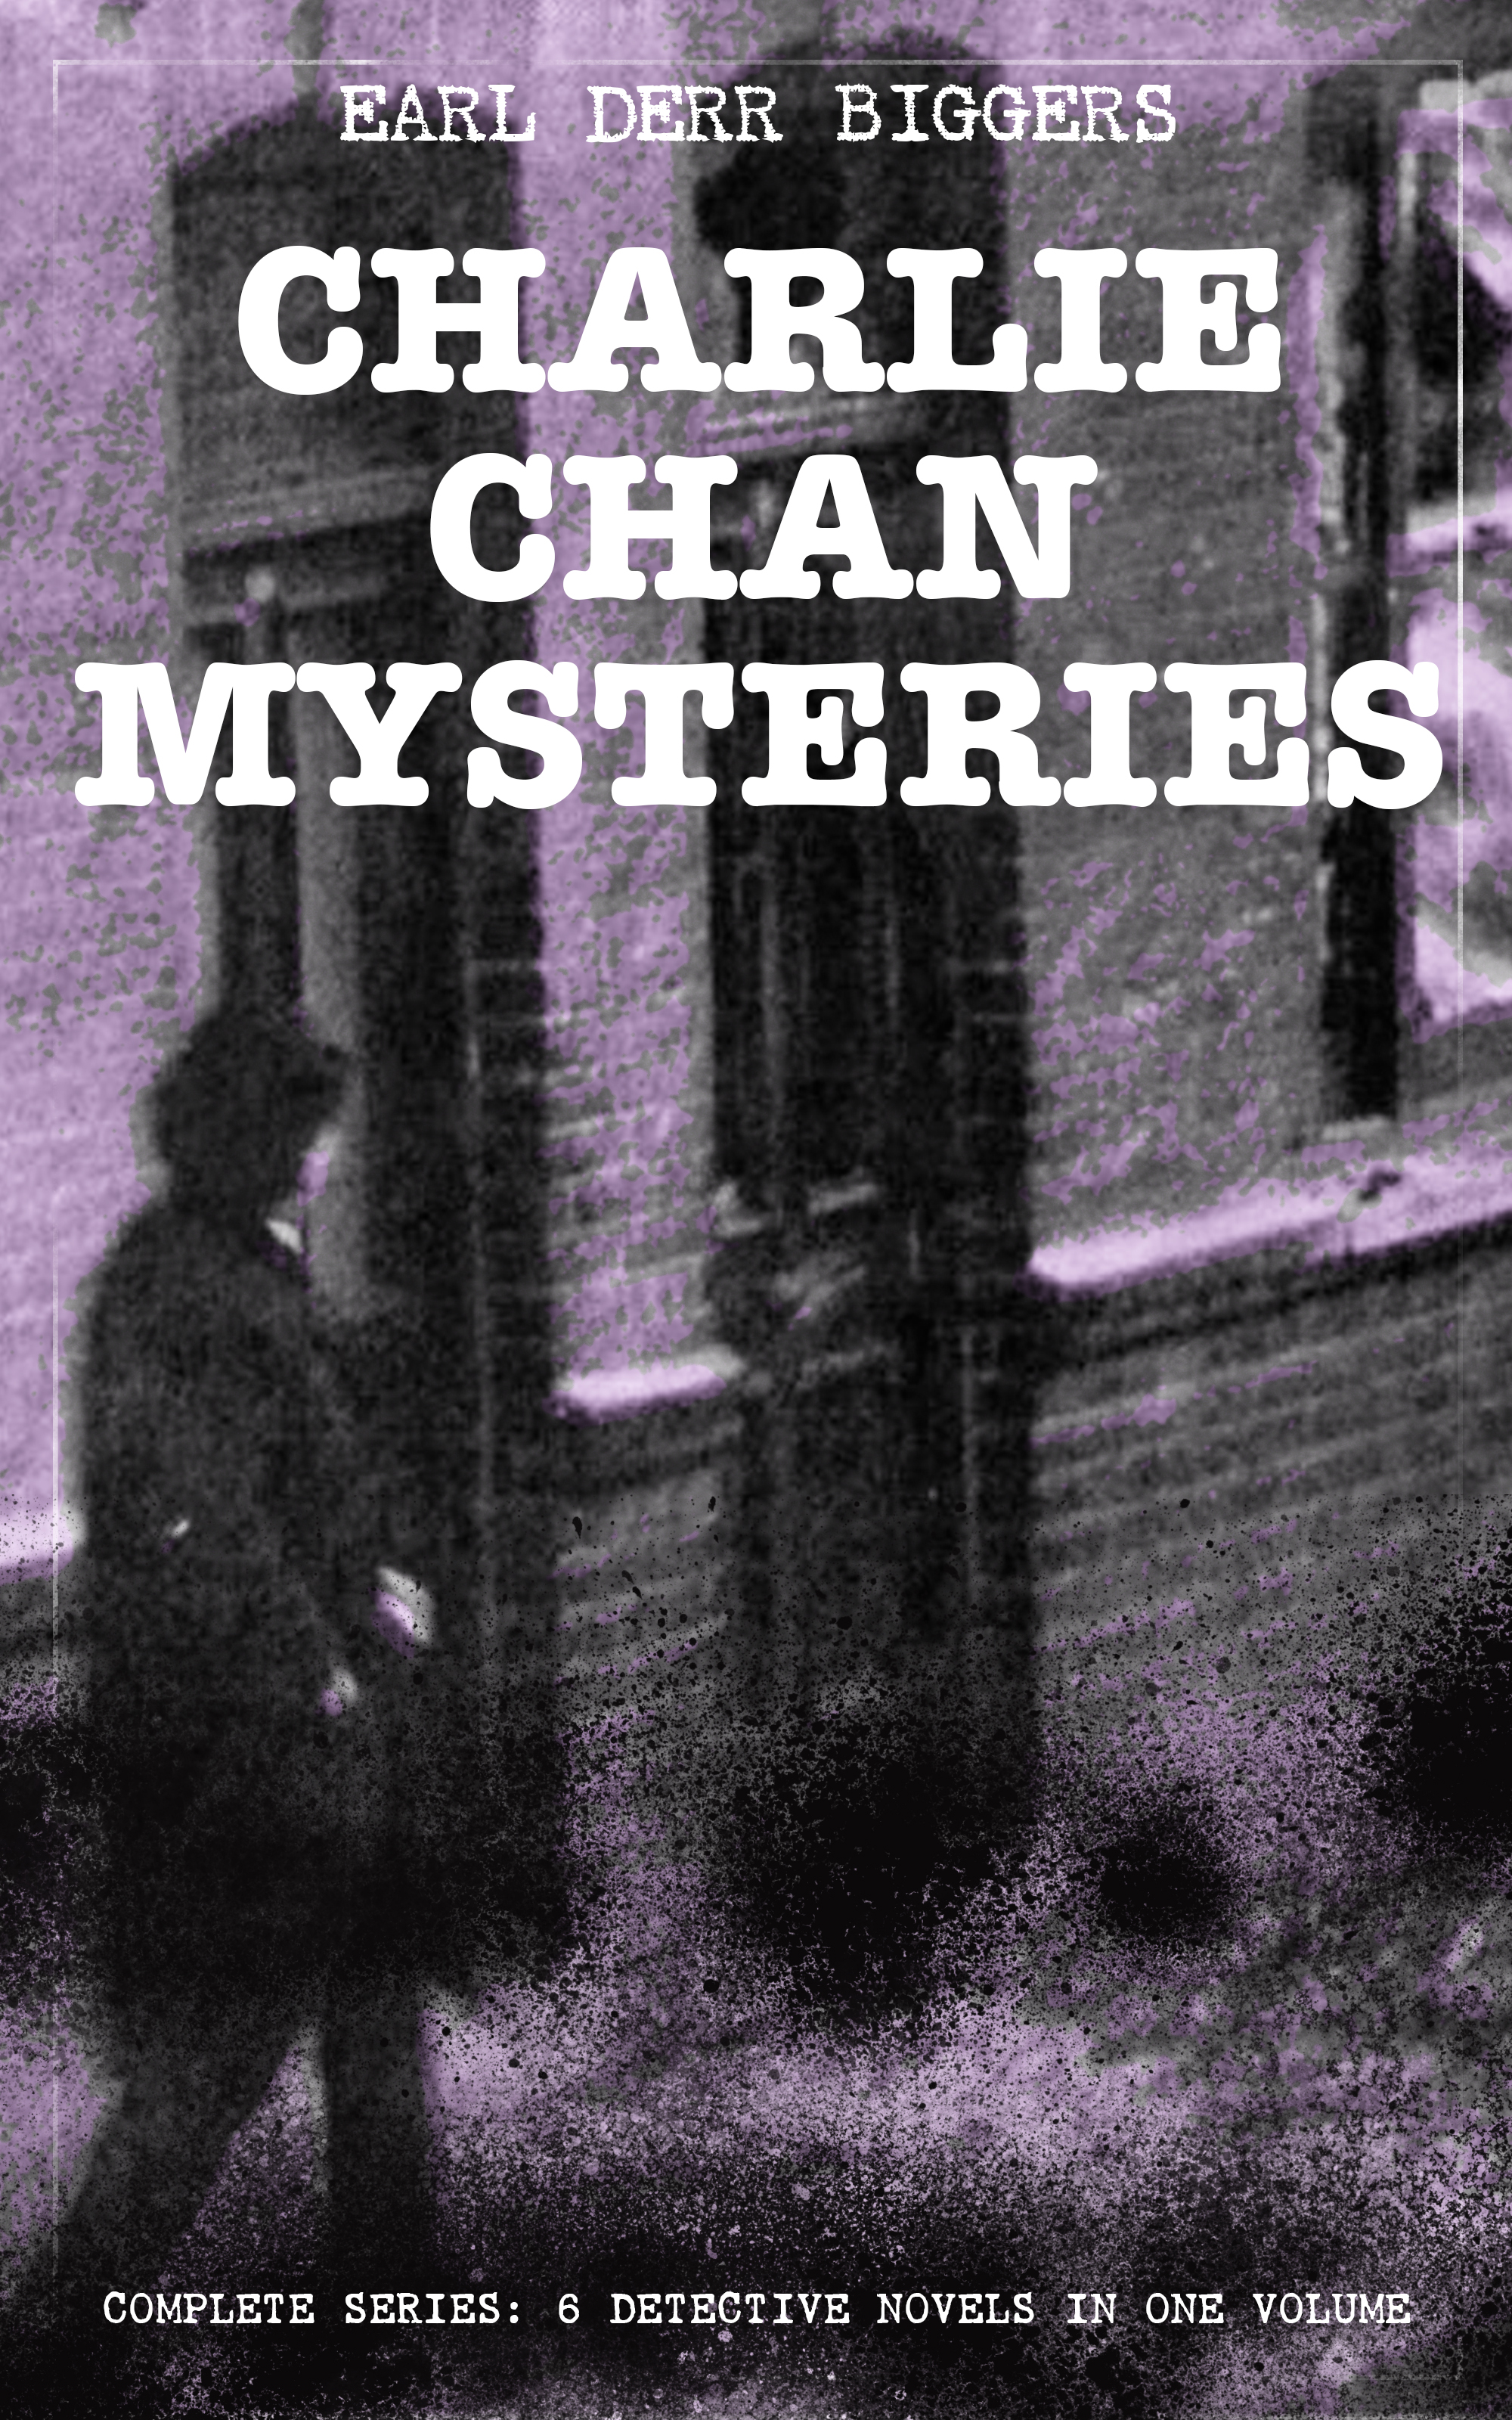 charlie chan mysteries complete series 6 detective novels in one volume